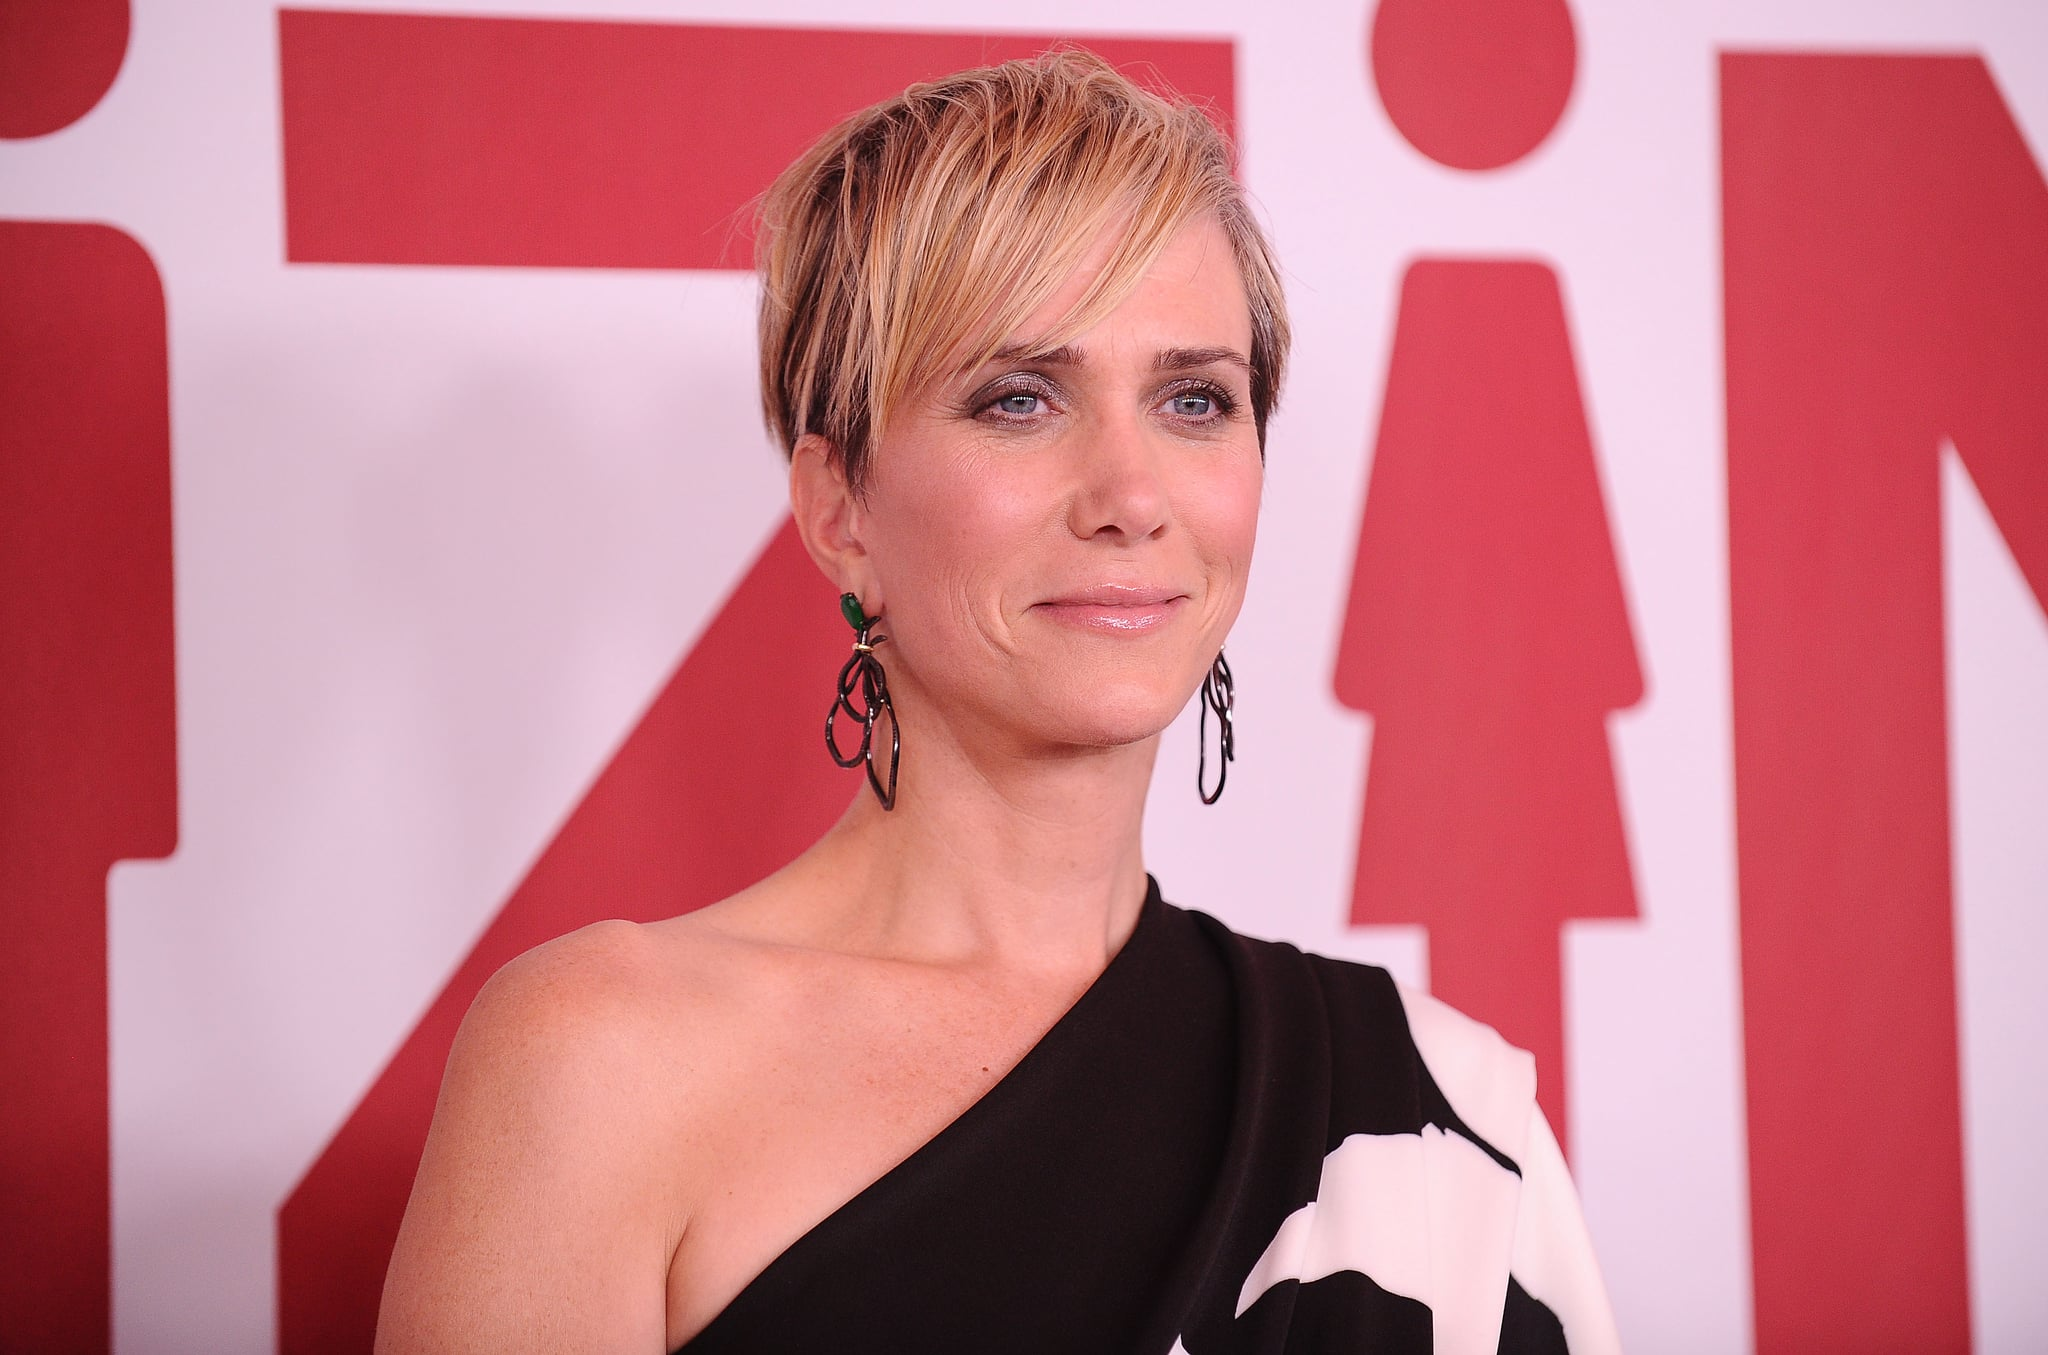 WESTWOOD, CA - DECEMBER 18:  Actress Kristen Wiig attends the premiere of